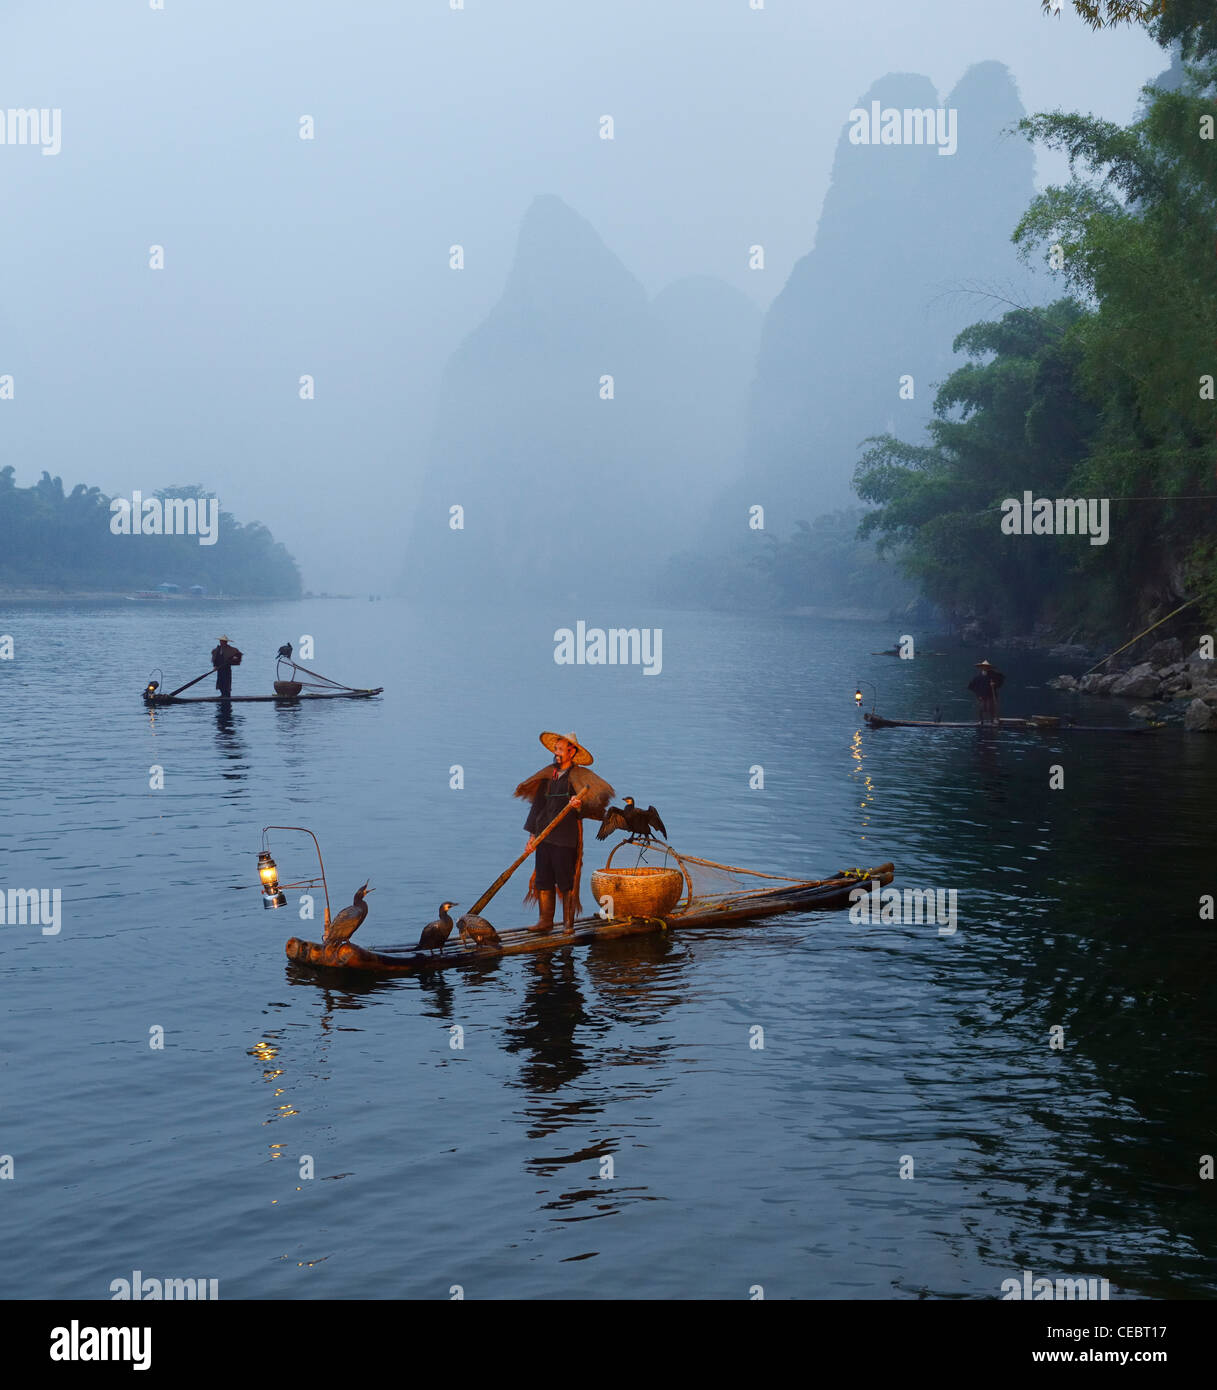 Cormorant fishermen in mist at dawn on the Li river with Karst mountain peaks near Xingping China Stock Photo